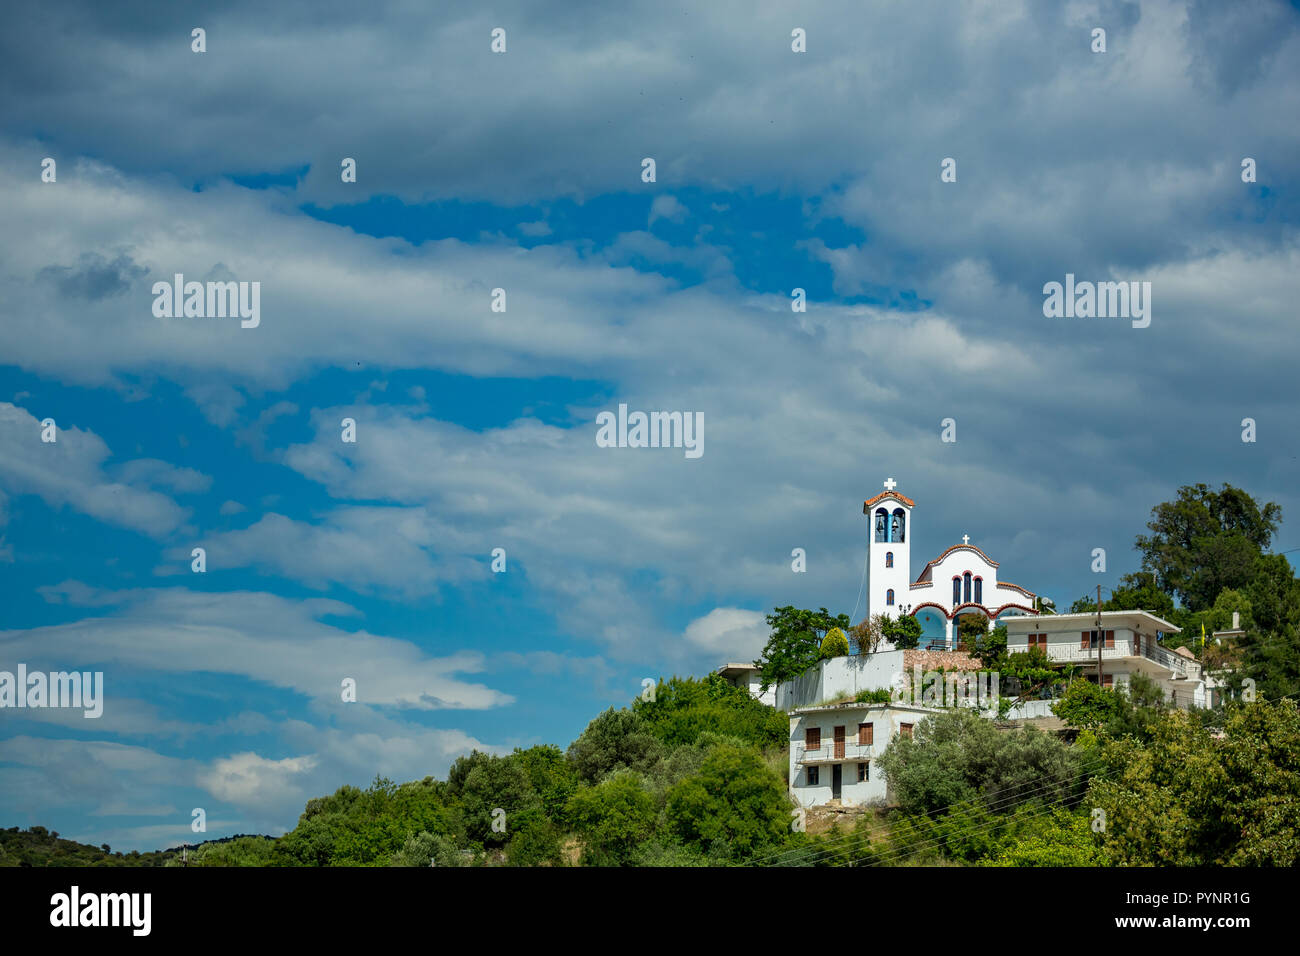 Spring daytime landscape with orthodox Christian church in the village of Mursi, Albania. Scenery cloudy sky with building located on top of green hill Stock Photo